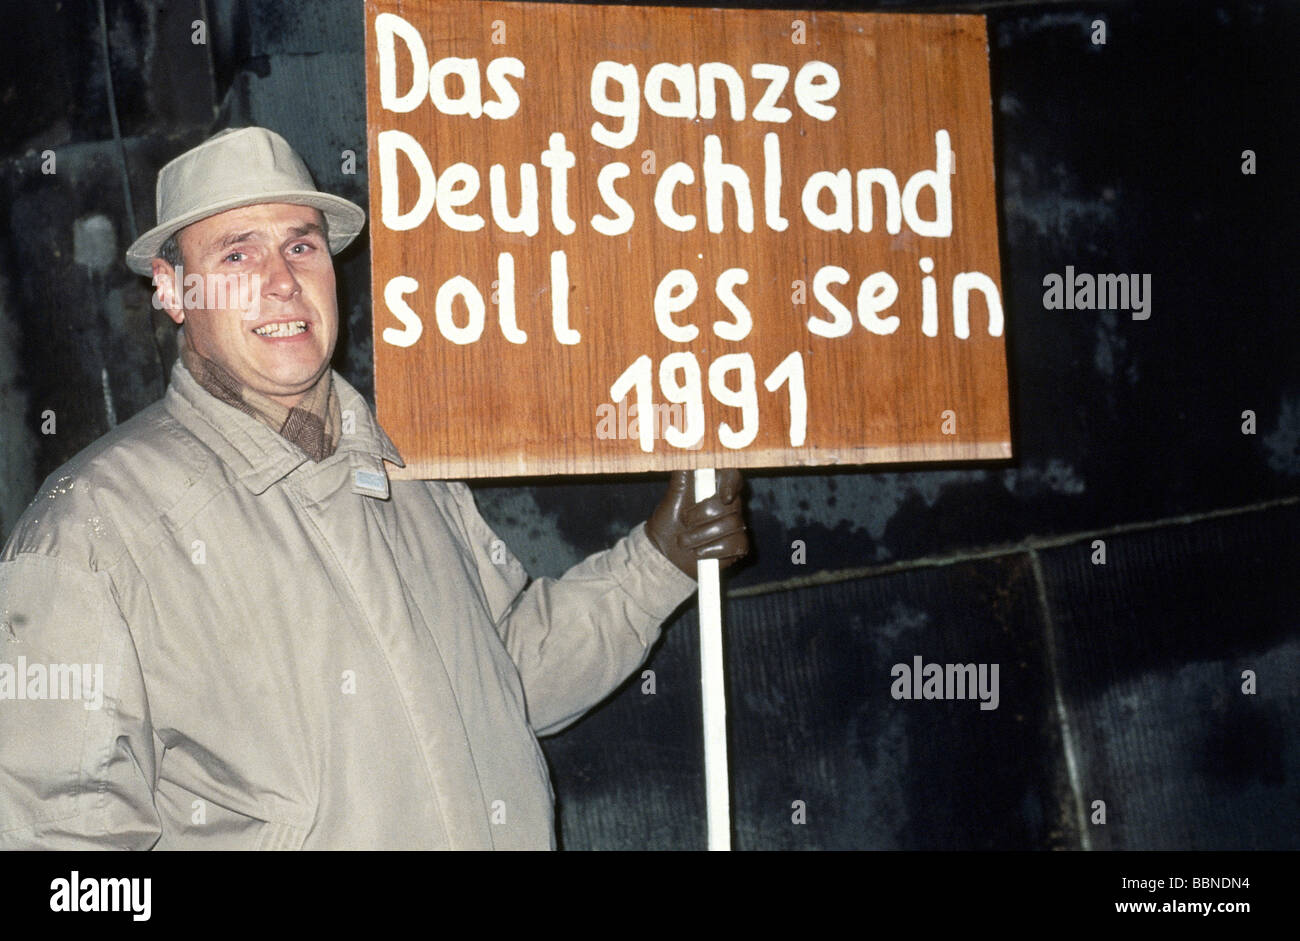 geography / travel, Germany, reunification, demonstrator with banner, November 1989, Additional-Rights-Clearances - Stock Image